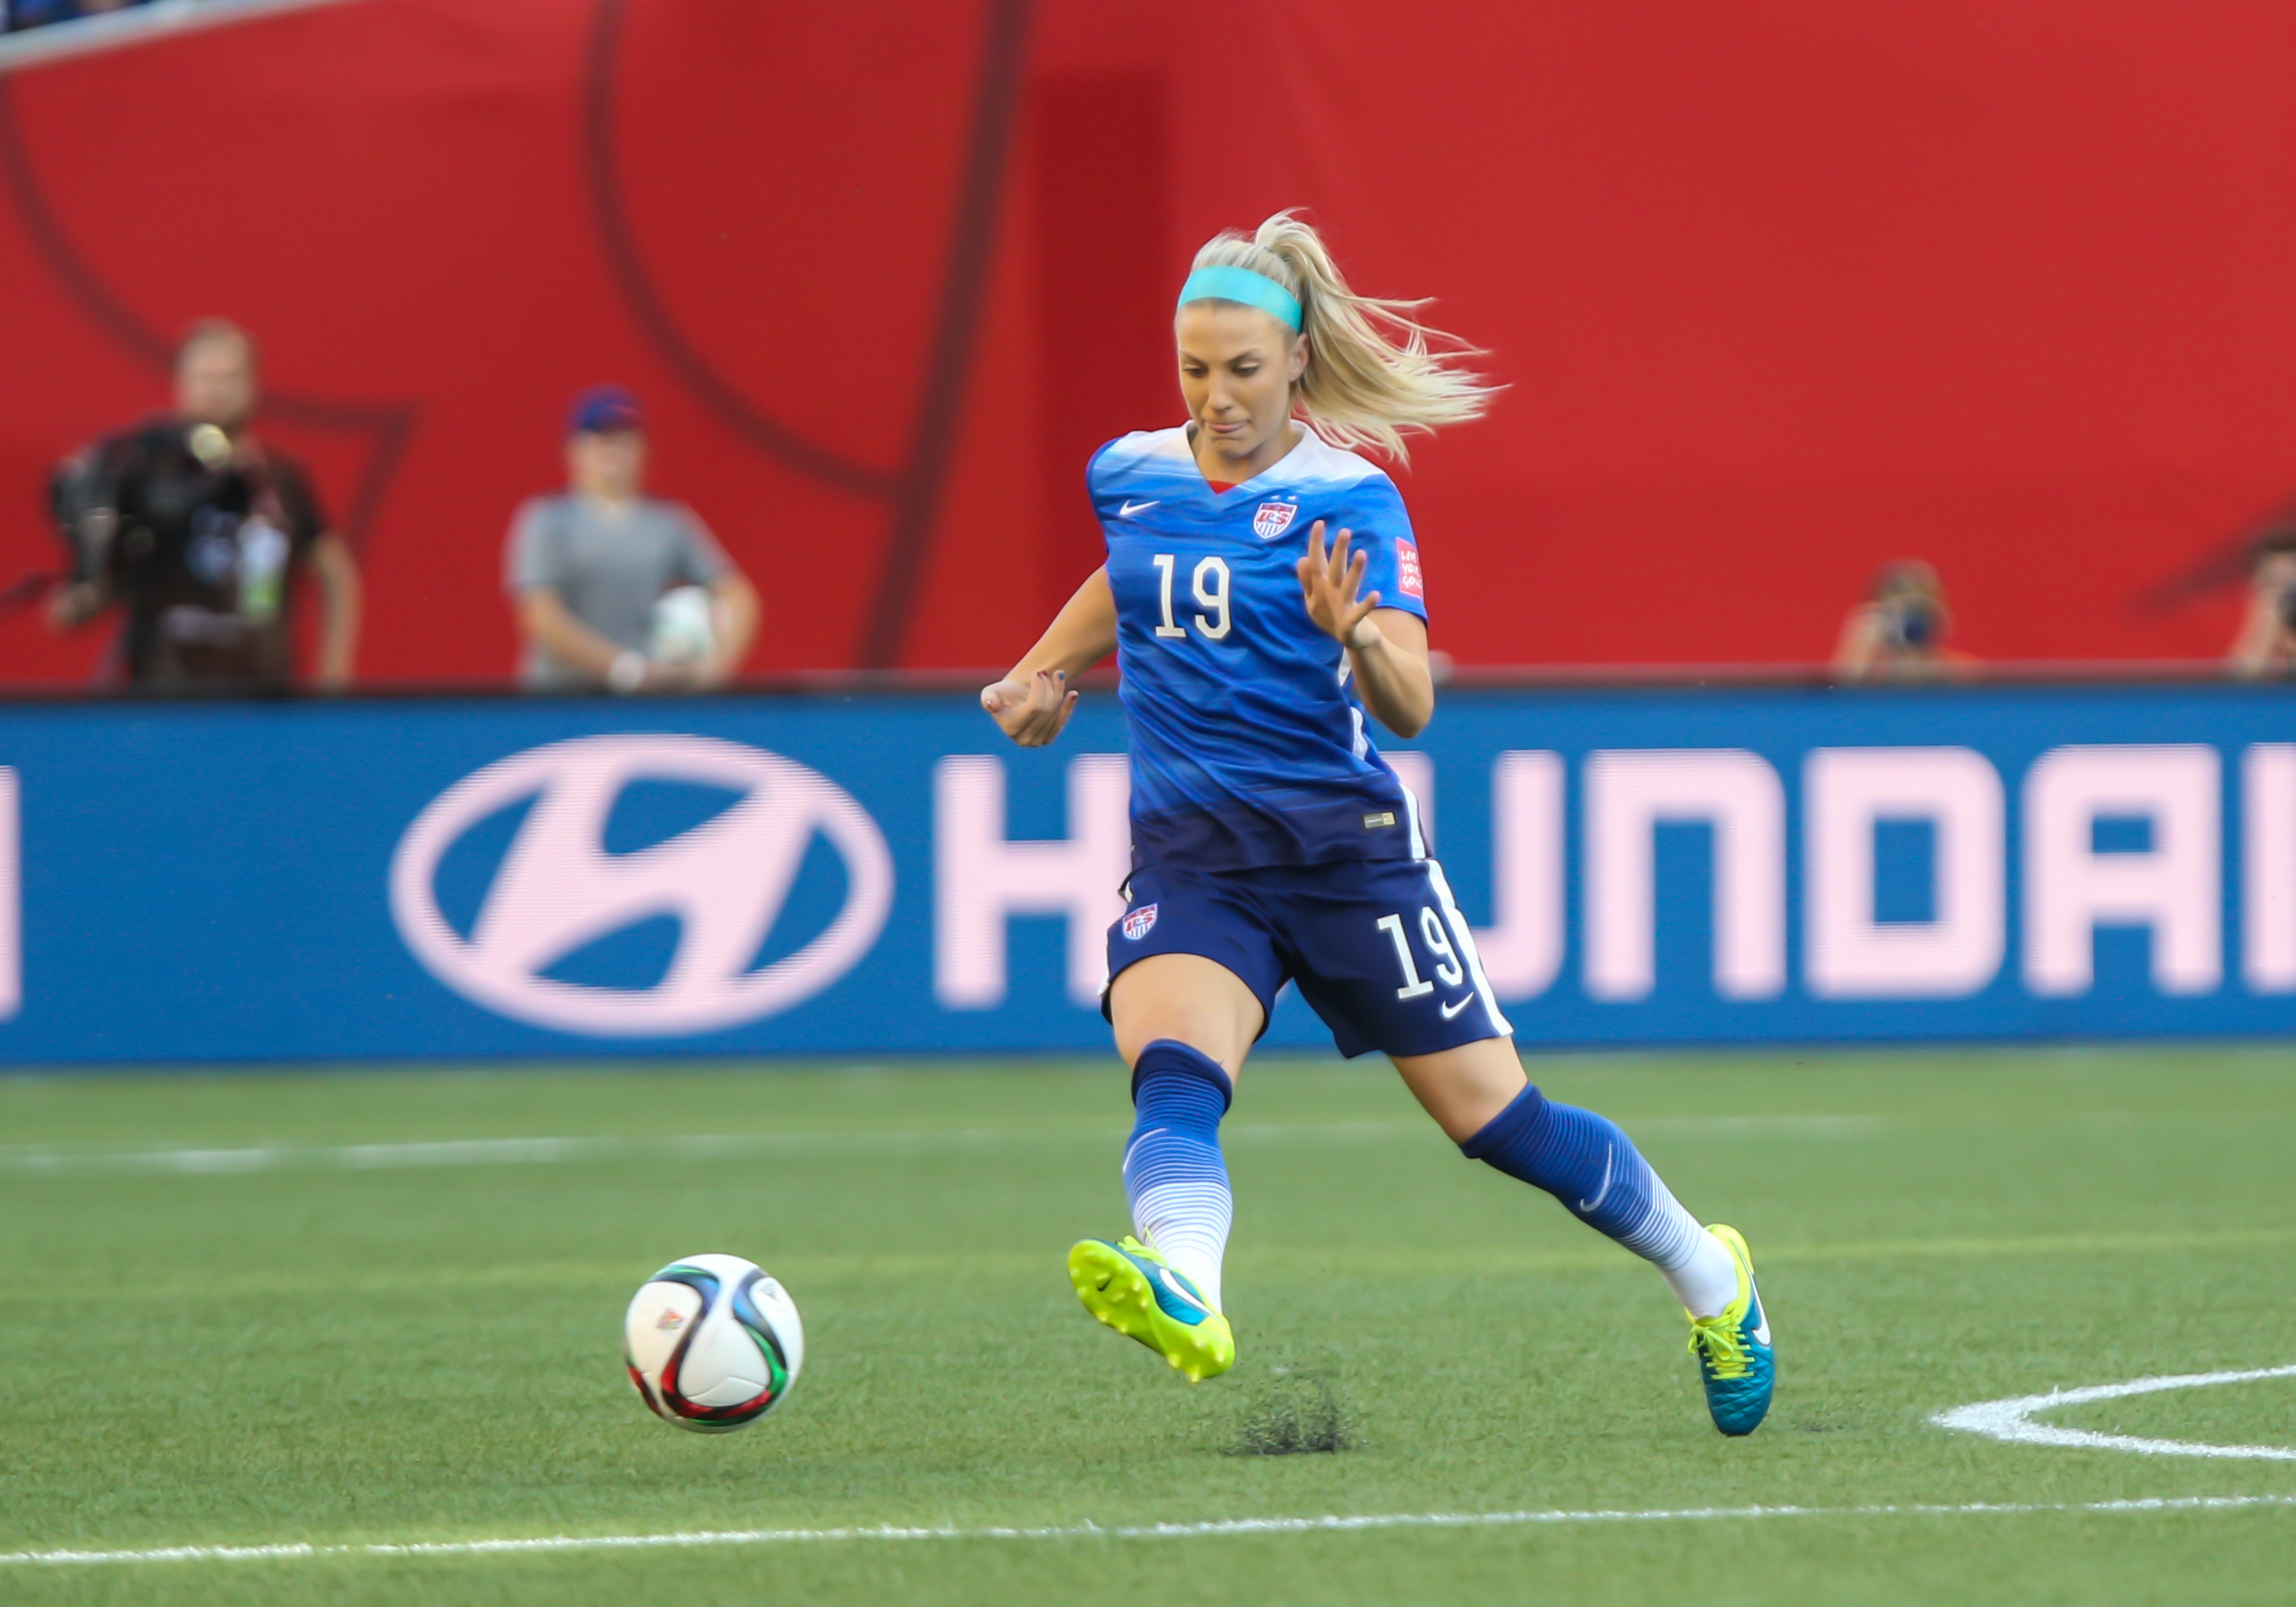 SOCCER: JUN 12 FIFA Women's World Cup - Group D - USA v Sweden